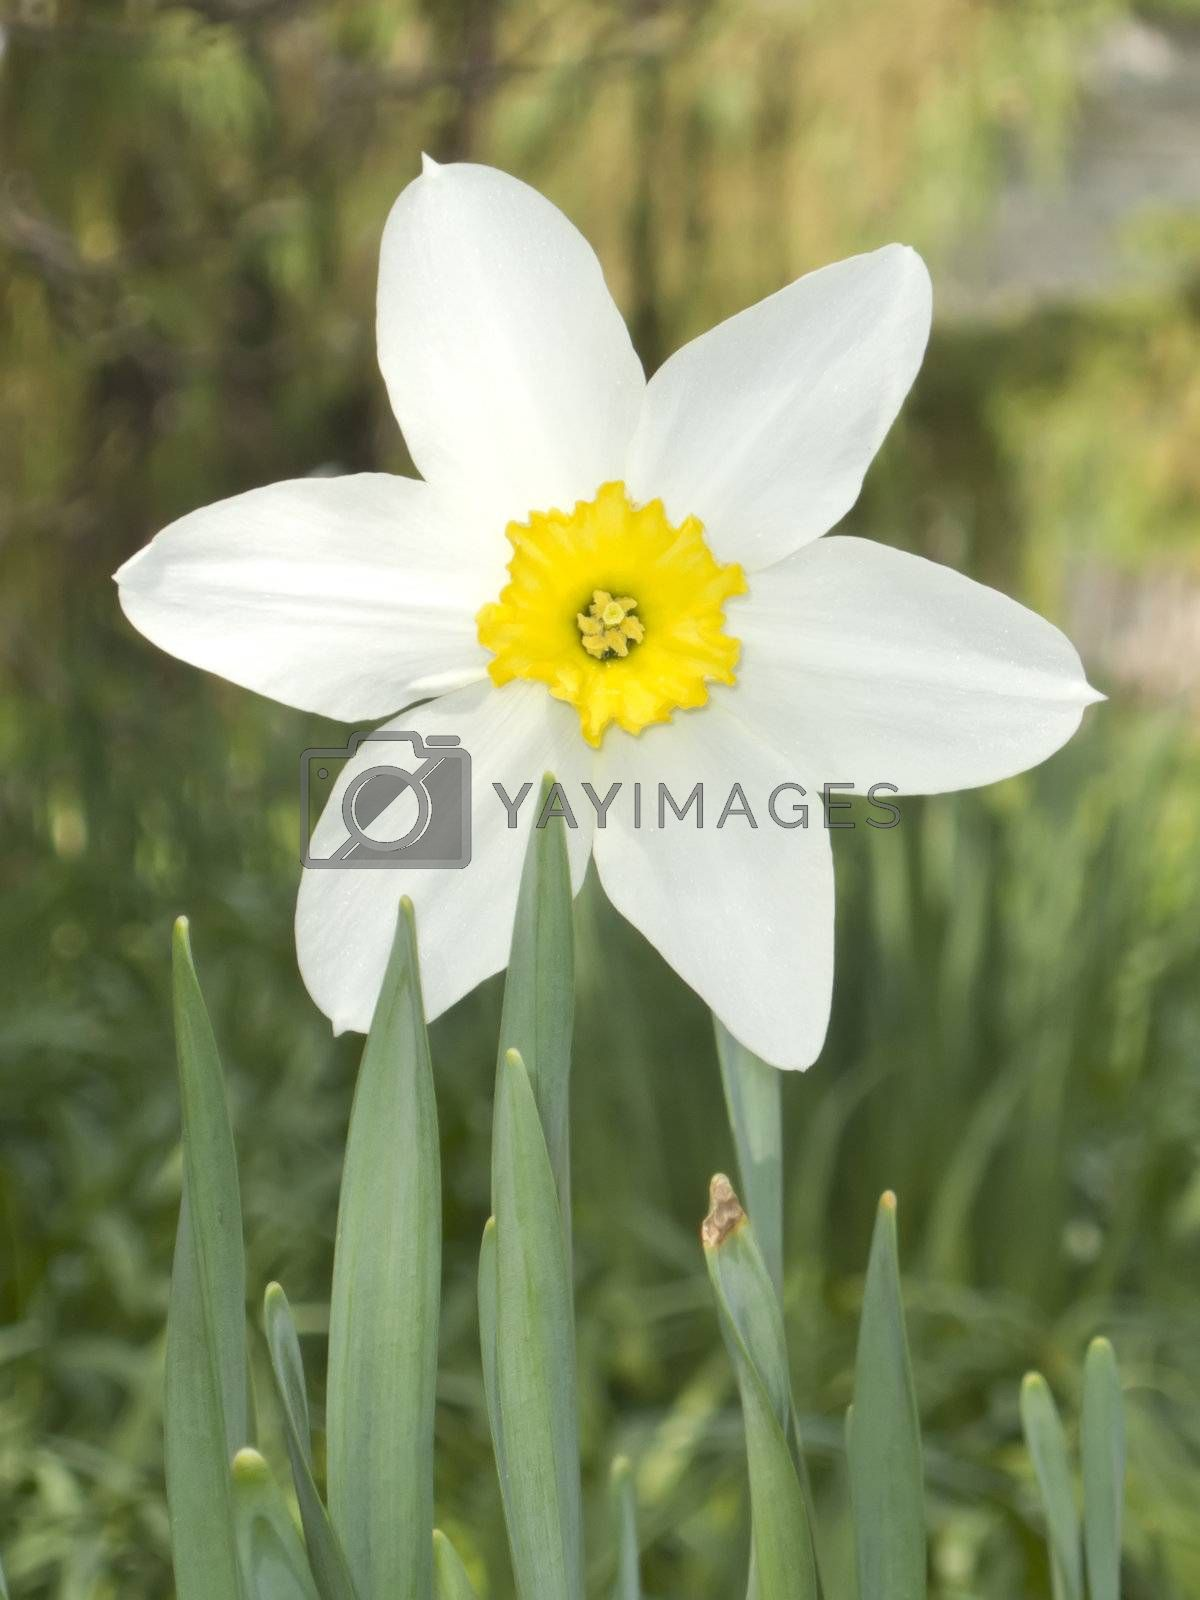 An image of a white daffodil in the garden